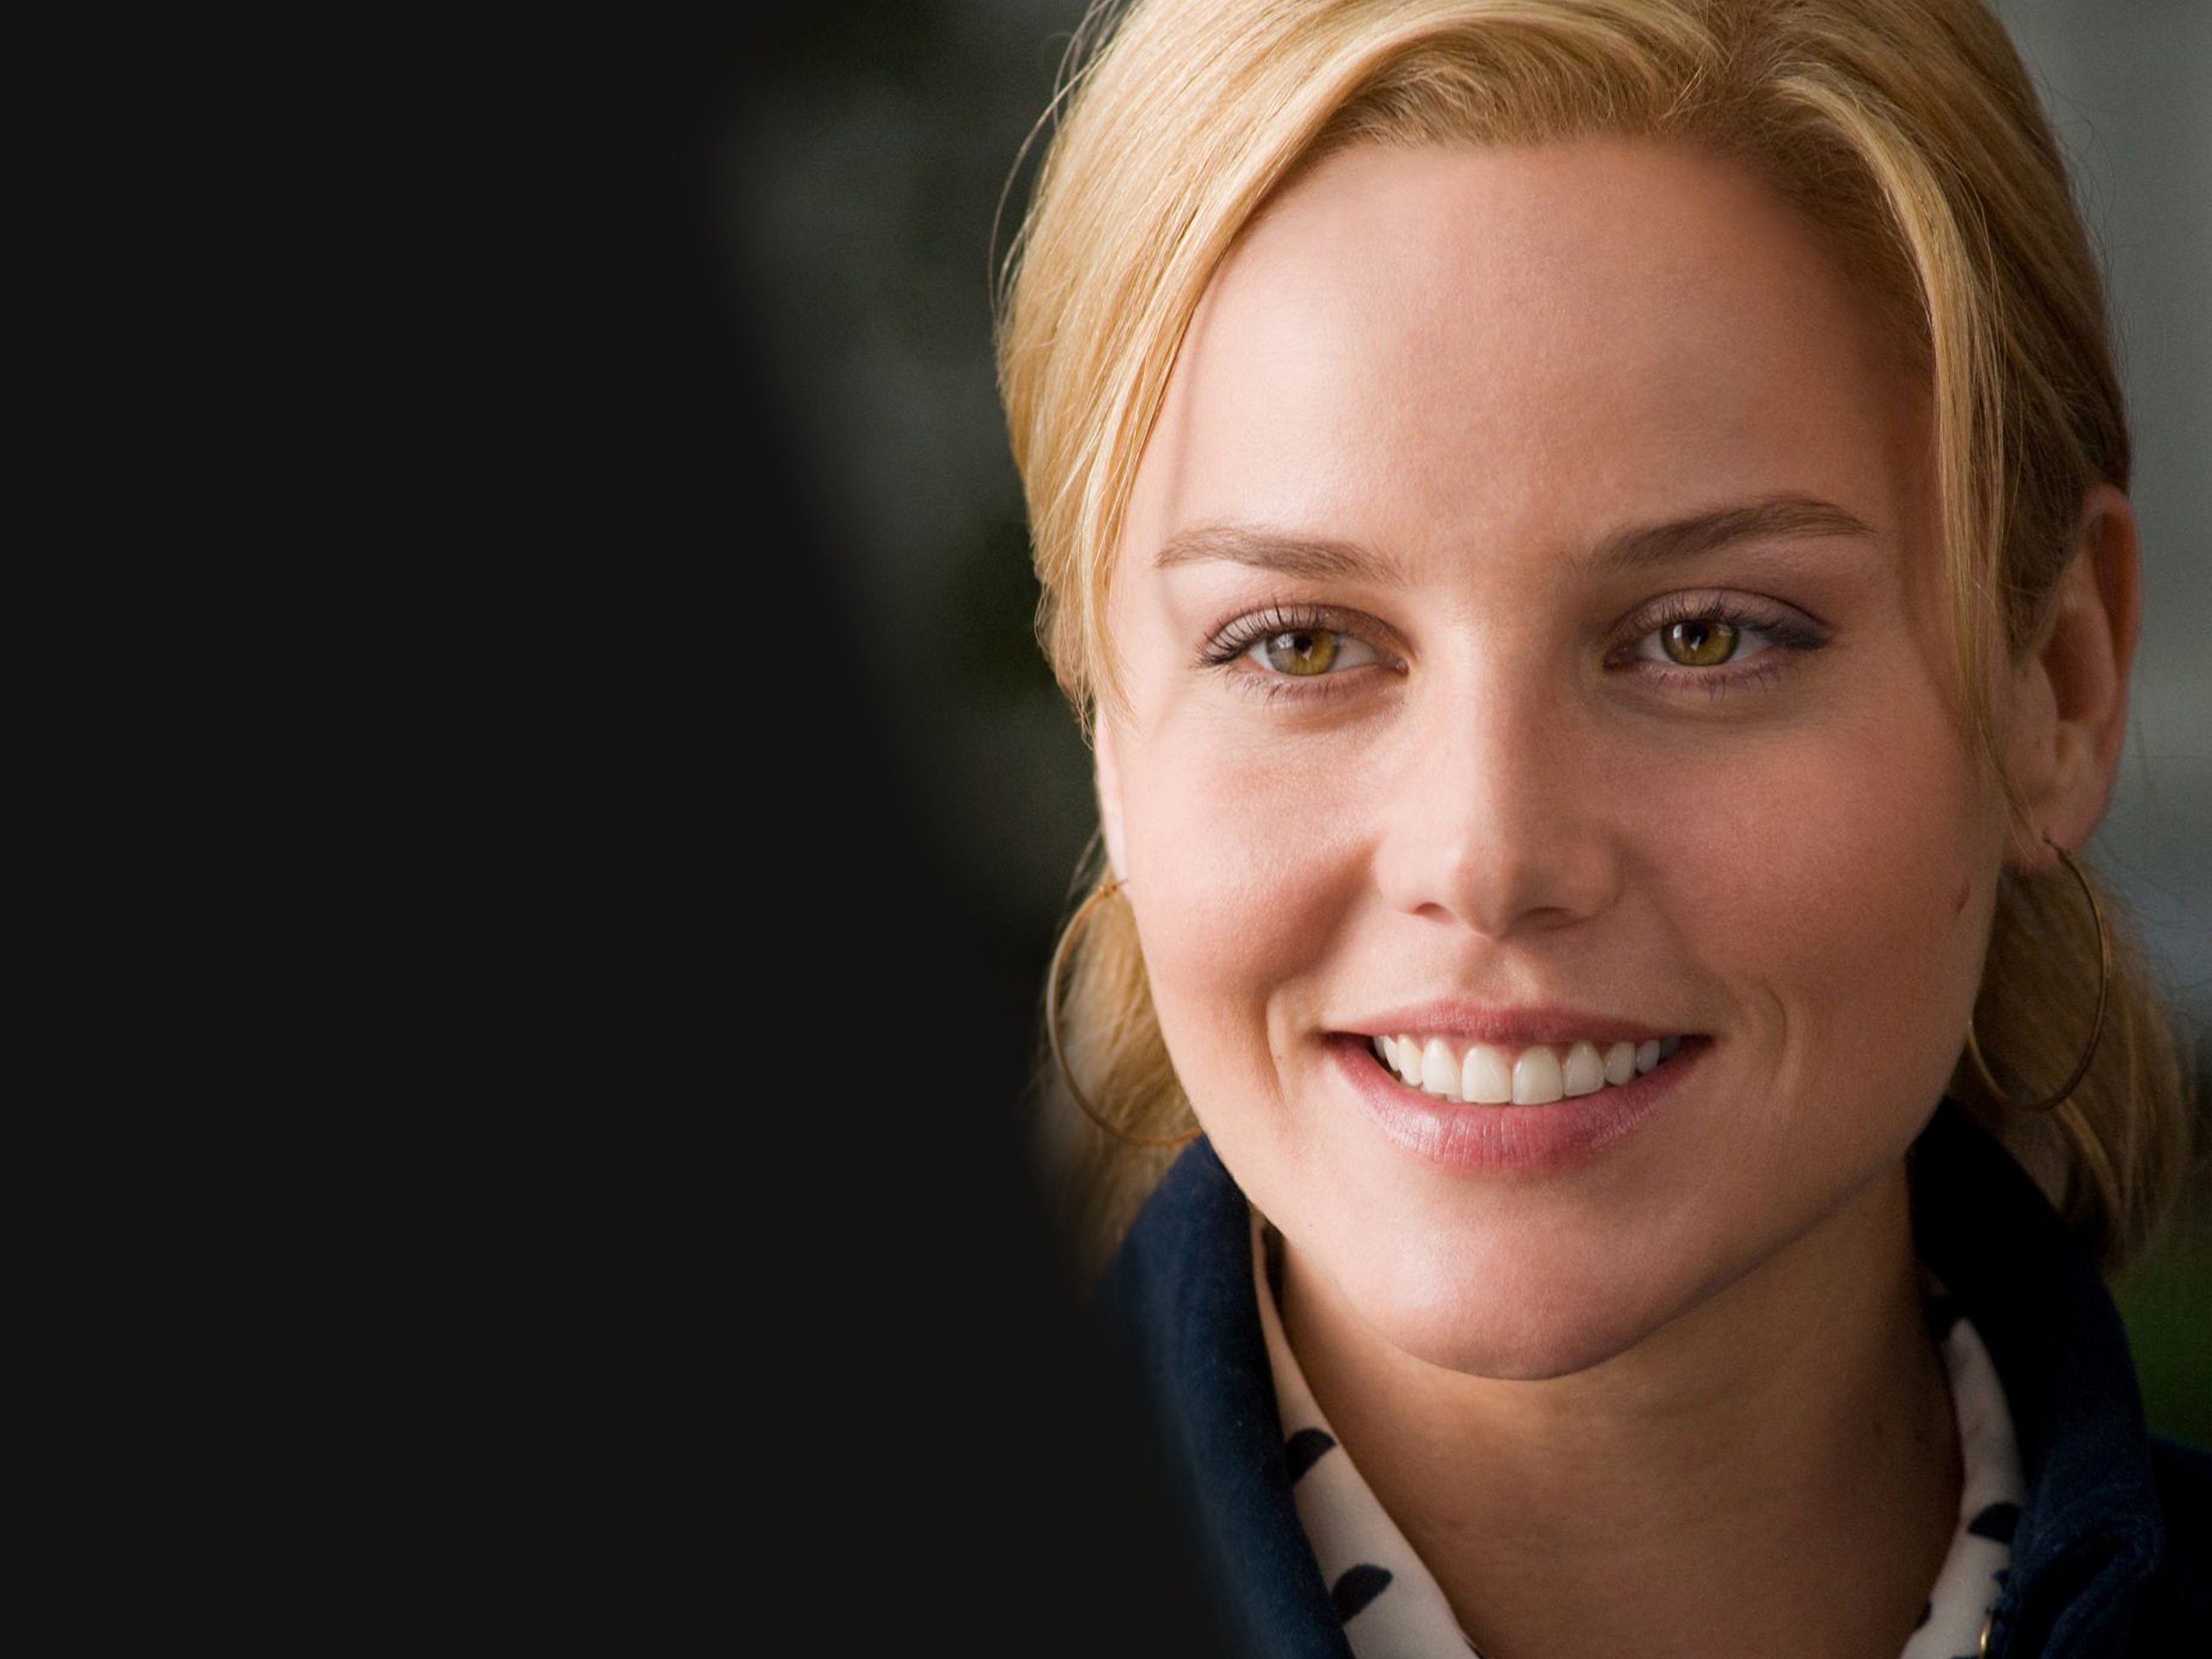 abbie cornish smile computer wallpaper 56048